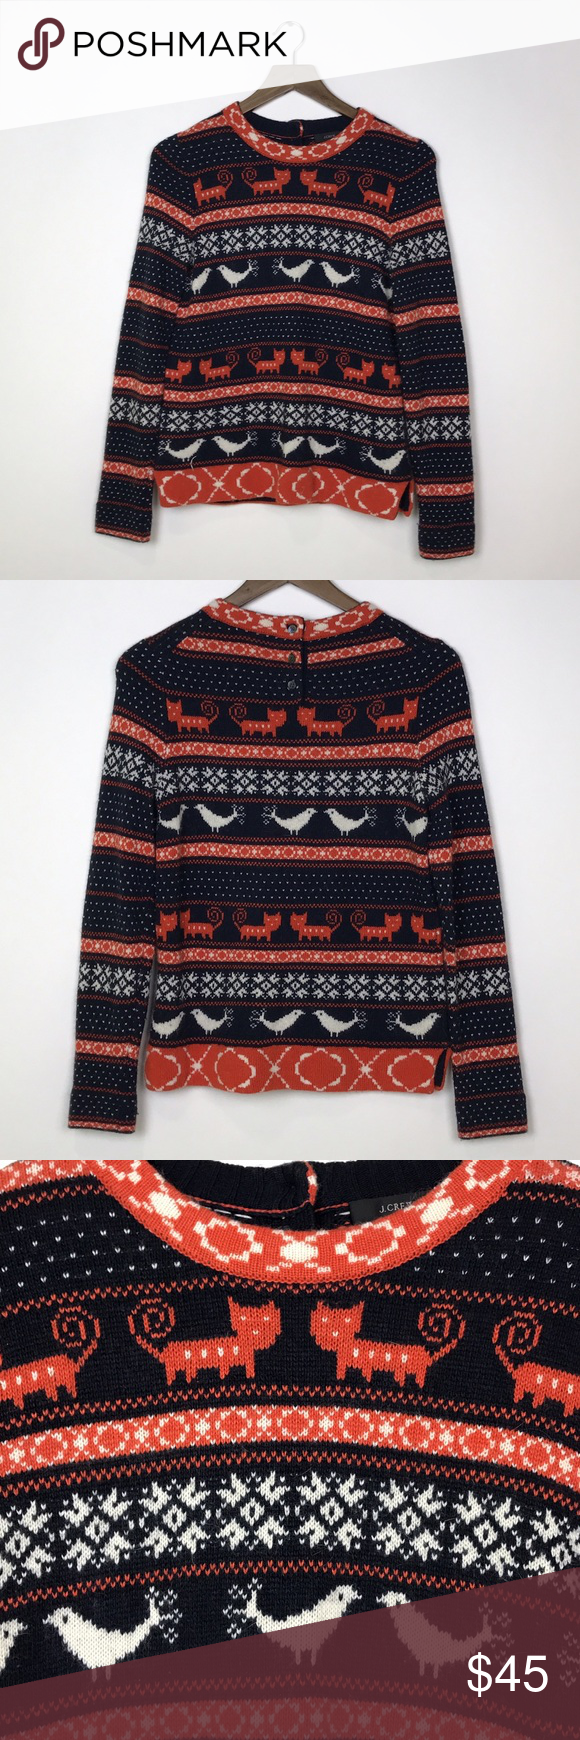 J Crew] Farmyard Fair Isle Sweater Cat Bird Rare | Navy, Cats and ...